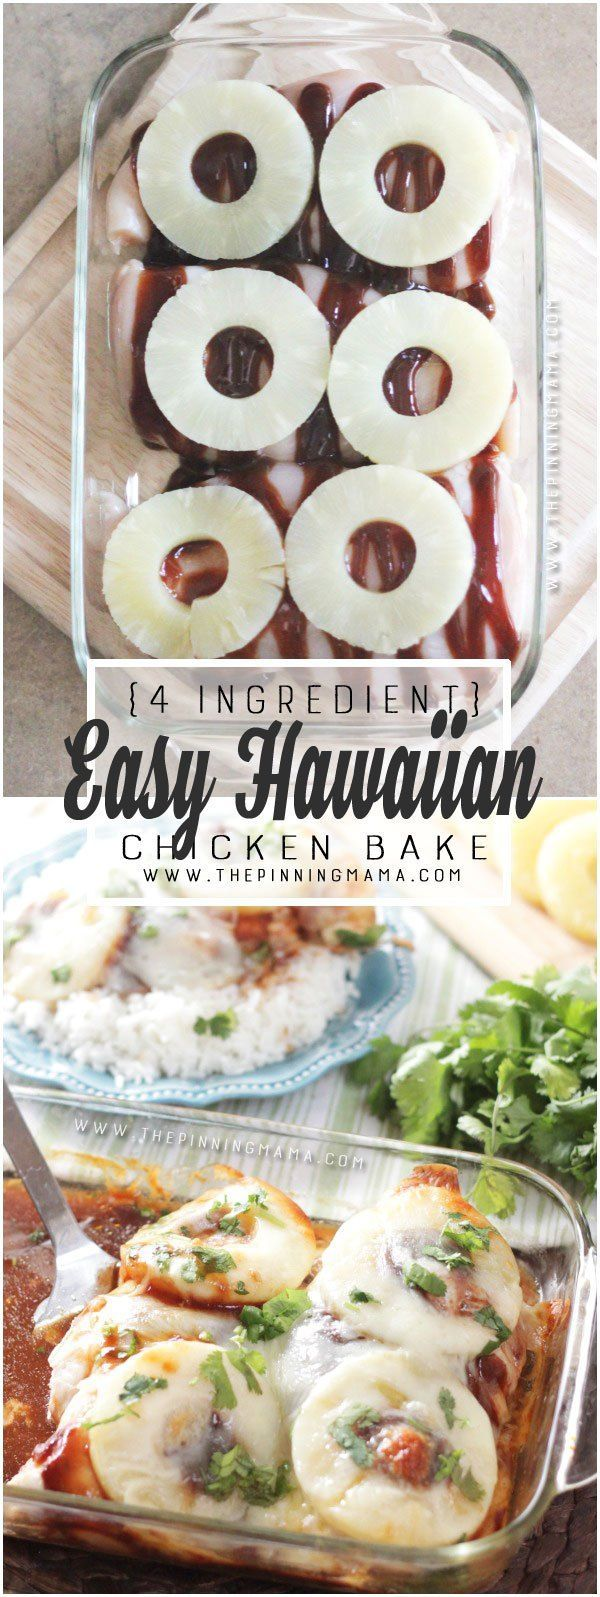 This is CRAZY delicious! And so easy and healthy for dinner! Hawaiian Chicken Bake recipe. Sweet & tangy BBQ sauce, pineapple, and cheese all baked over chicken. YUM! (Bbq Chicken Pineapple)